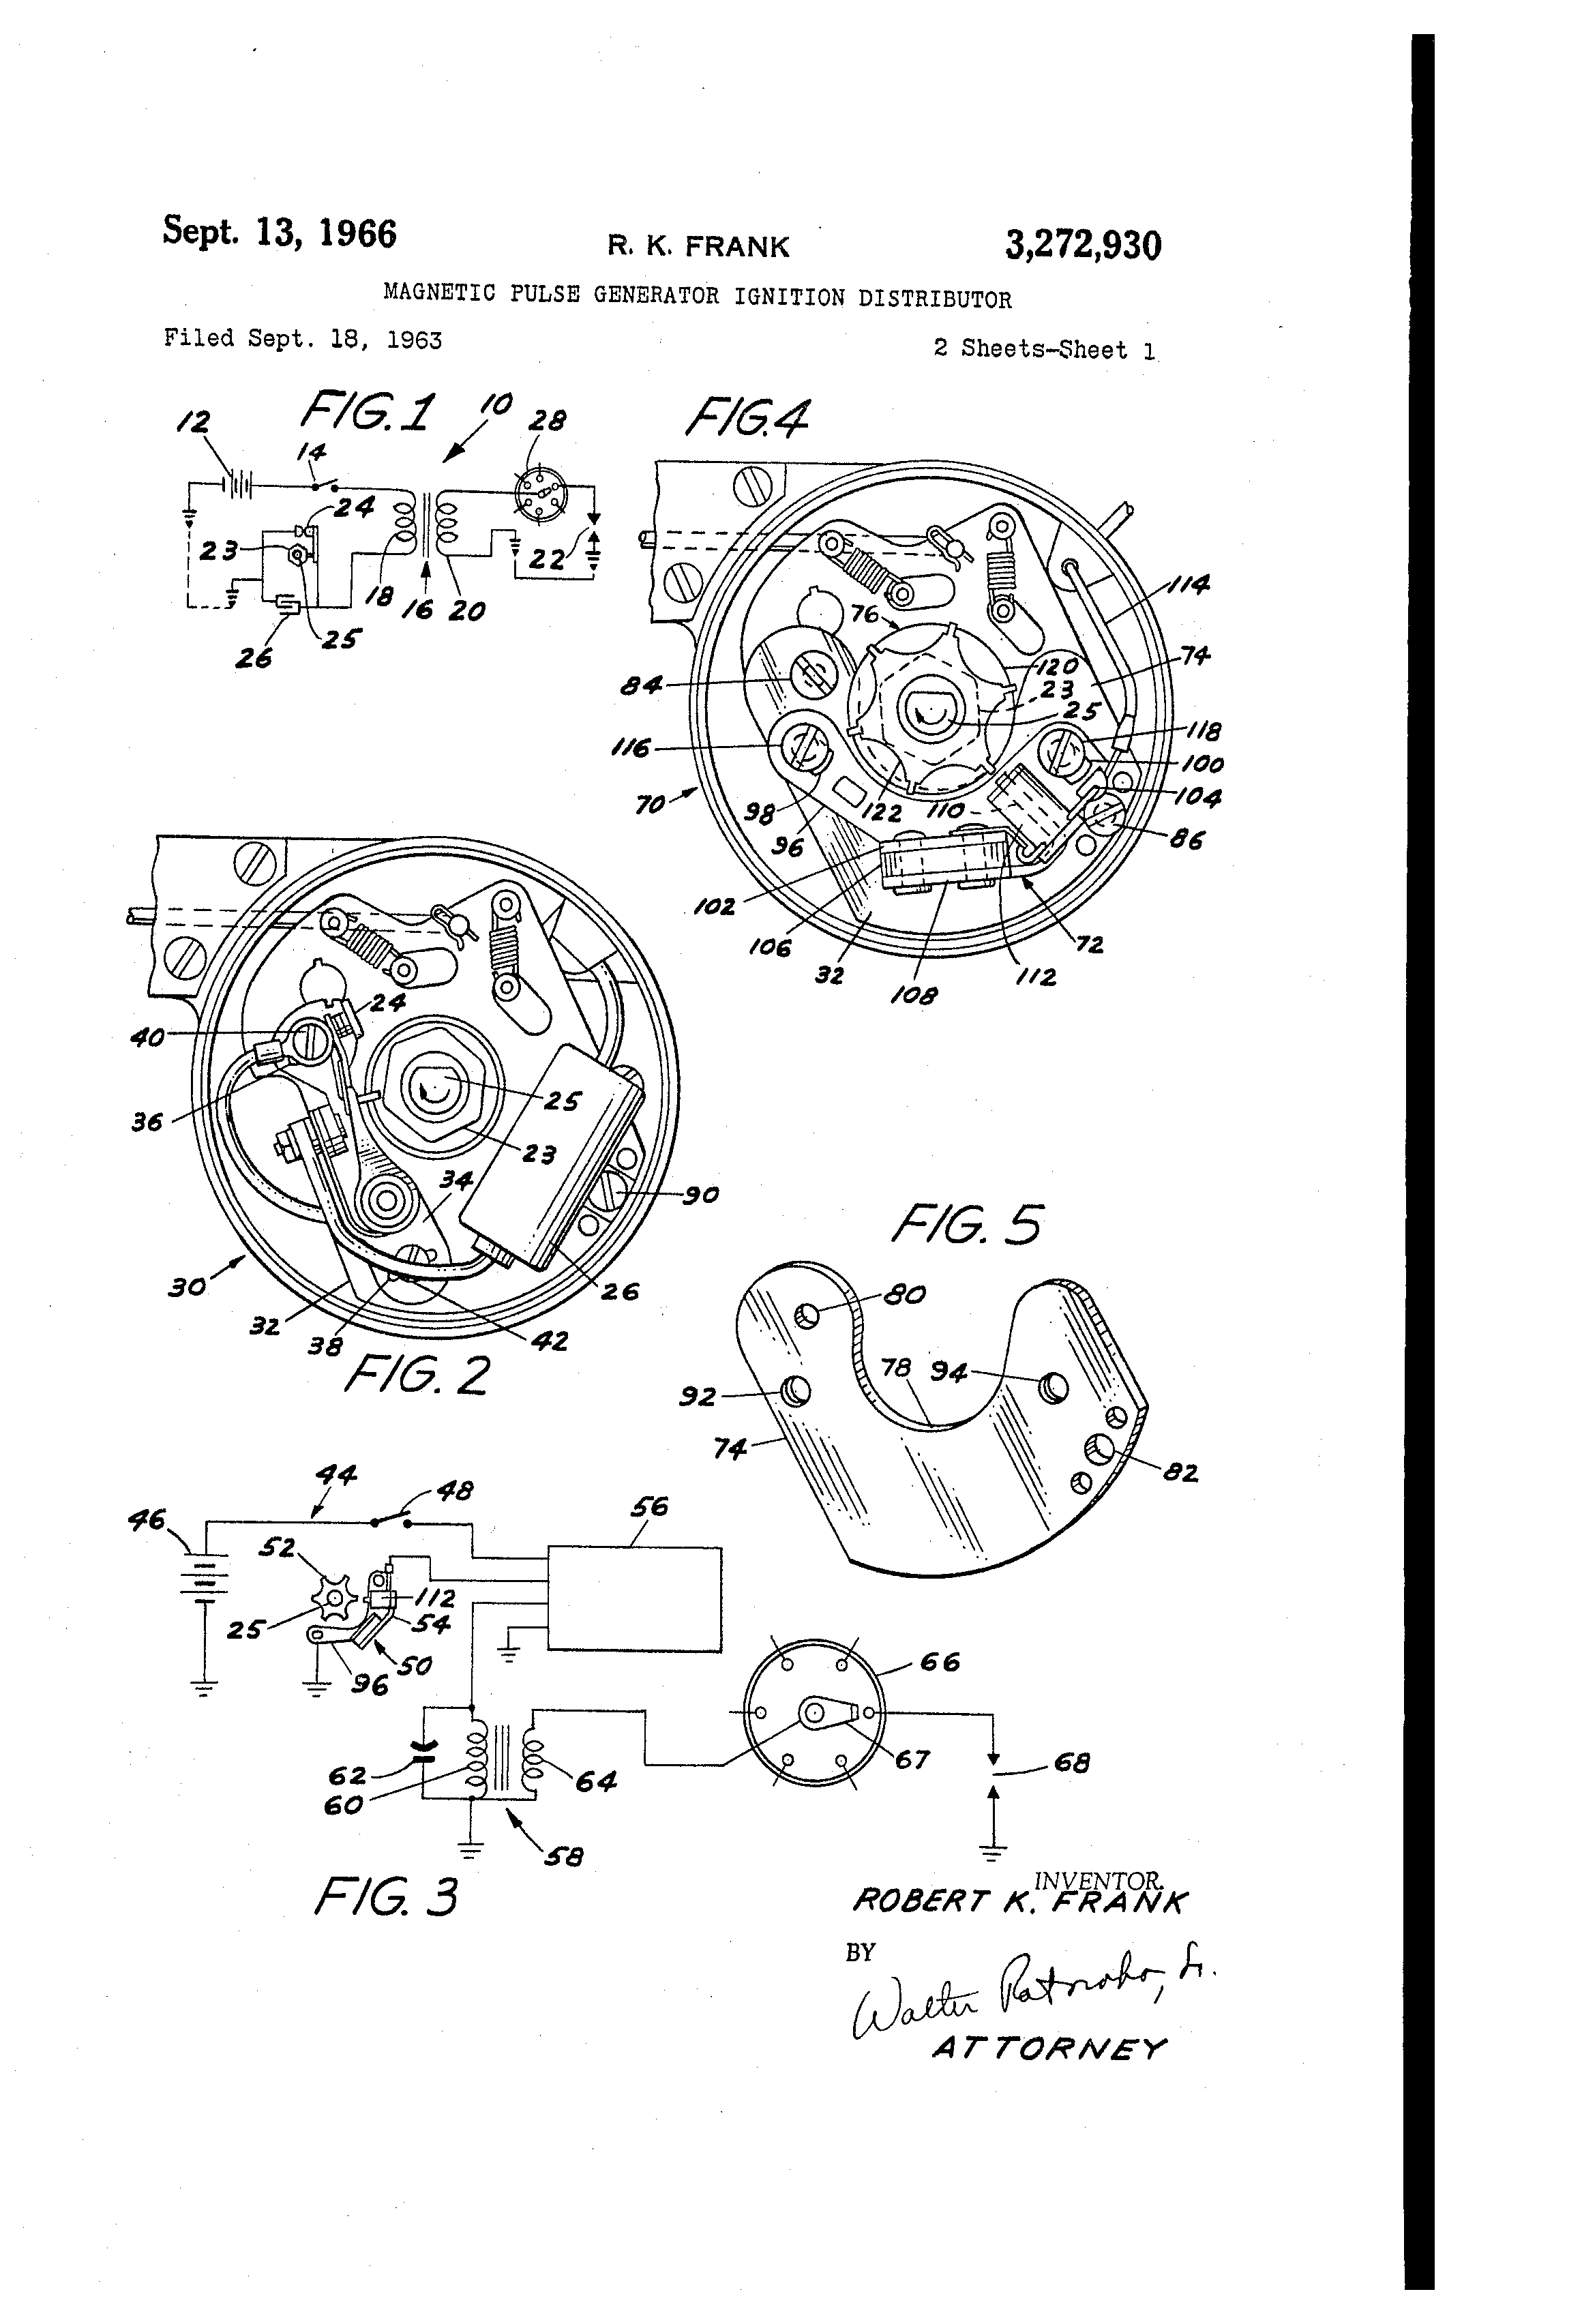 patent us3272930 - magnetic pulse generator ignition distributor